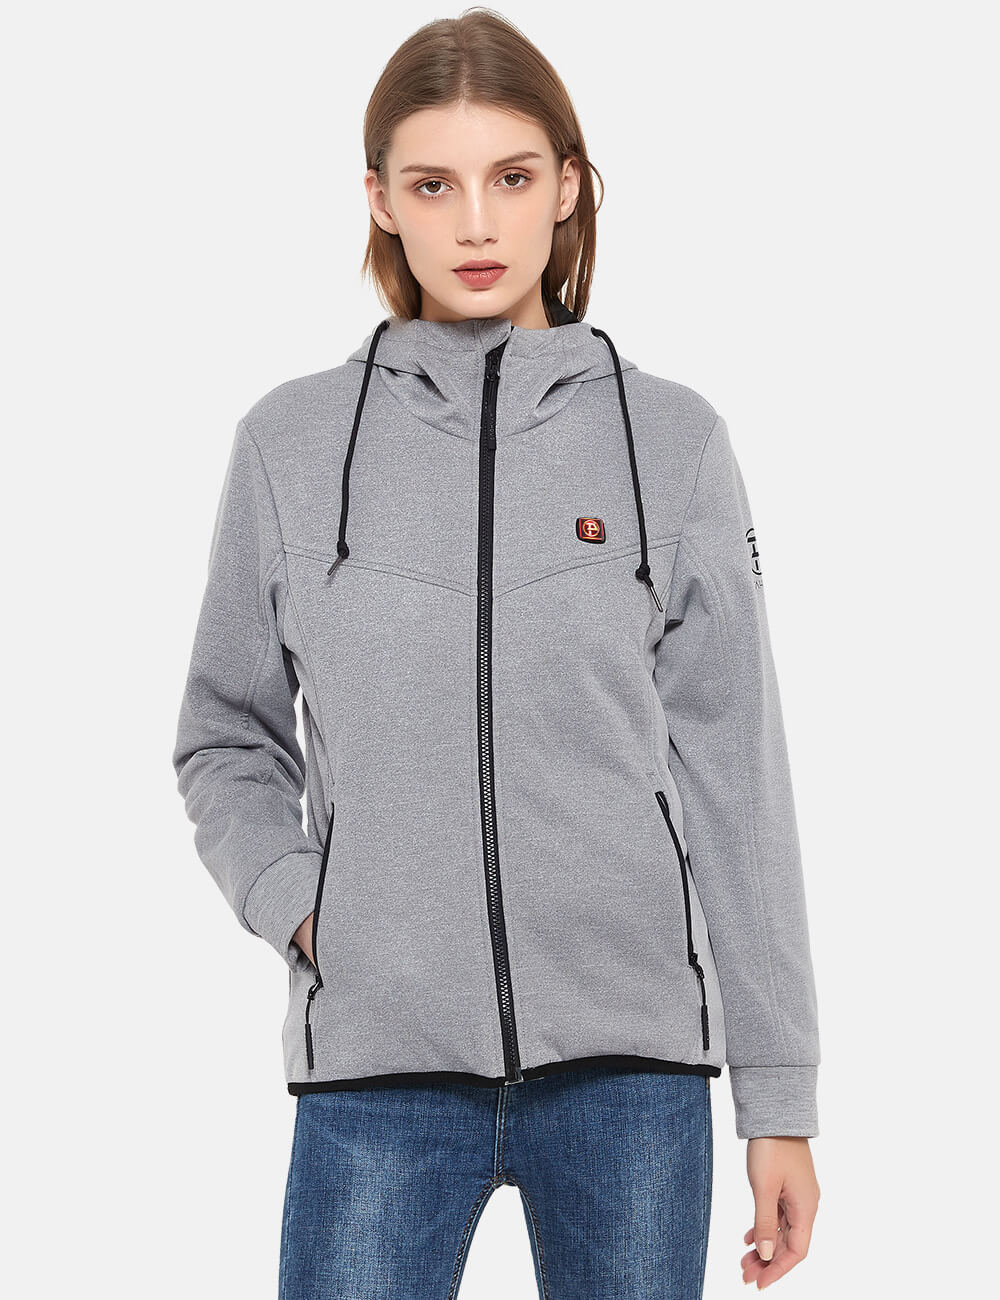 Womens 3 Zone Water-Resistant Heated Hoodie with Battery Kit - Grey